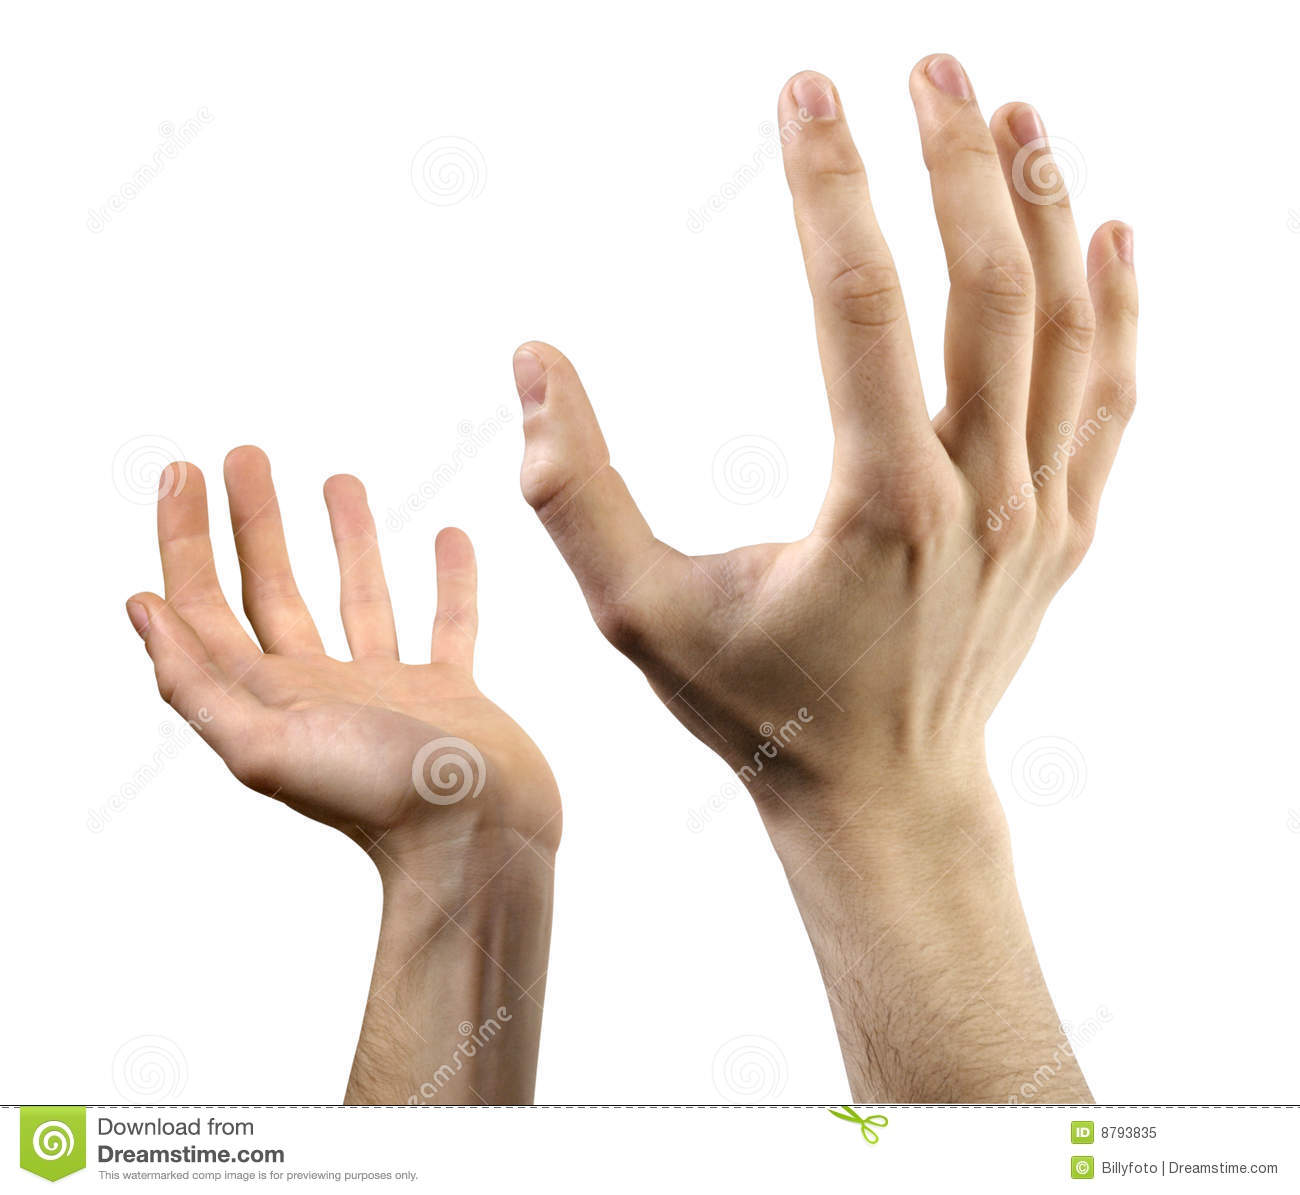 hands open stock image  image of fingers  palms  holding